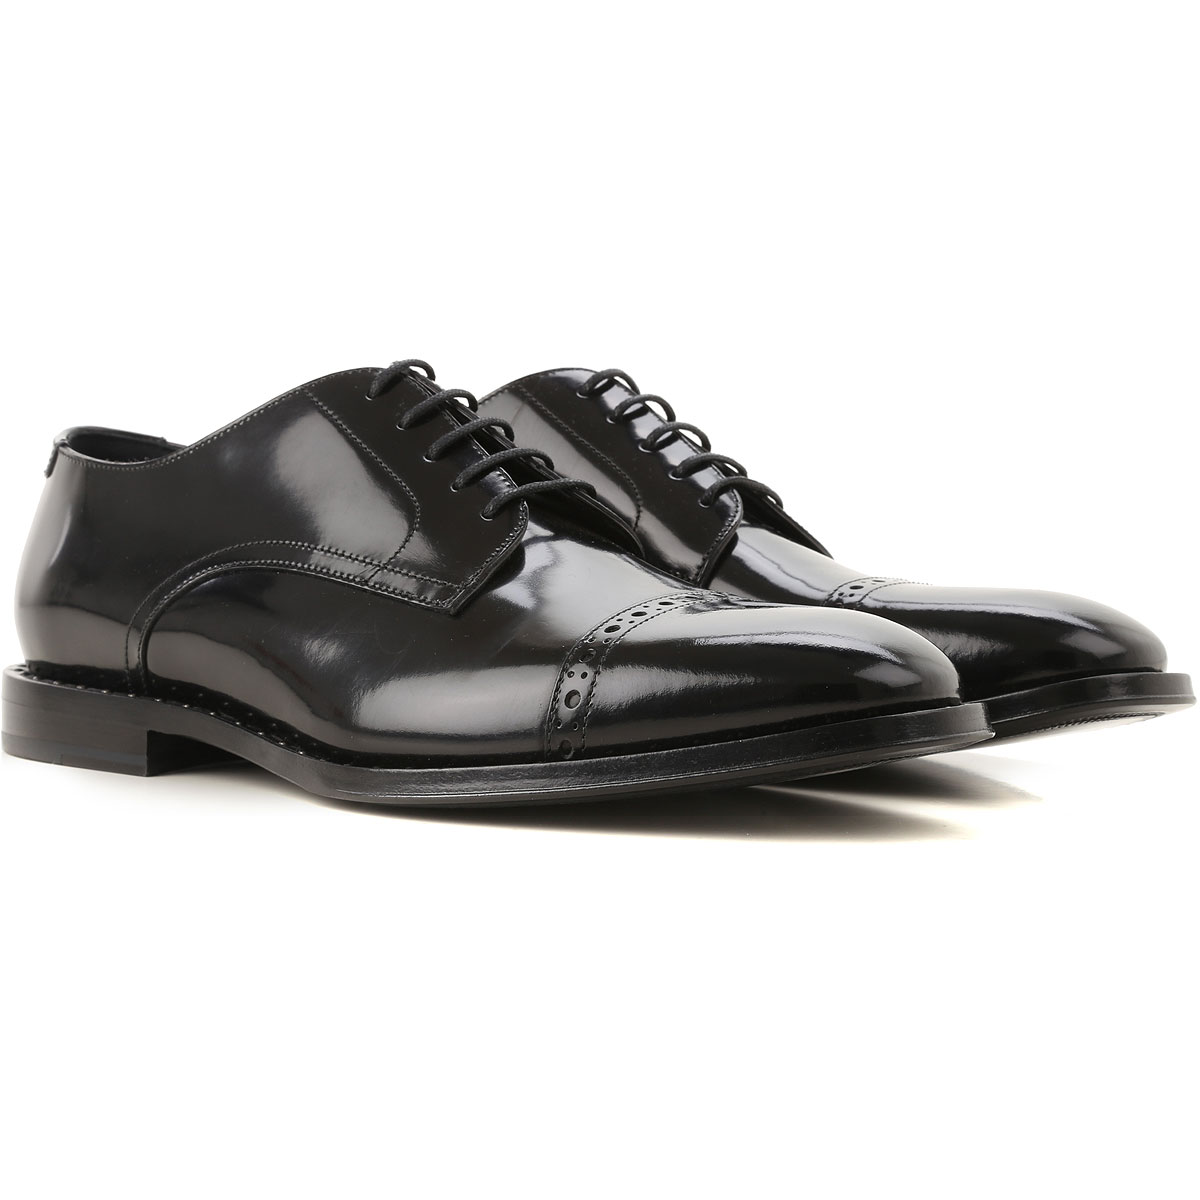 Jimmy Choo Lace Up Shoes for Men Oxfords Derbies and Brogues On Sale in Outlet SE - GOOFASH